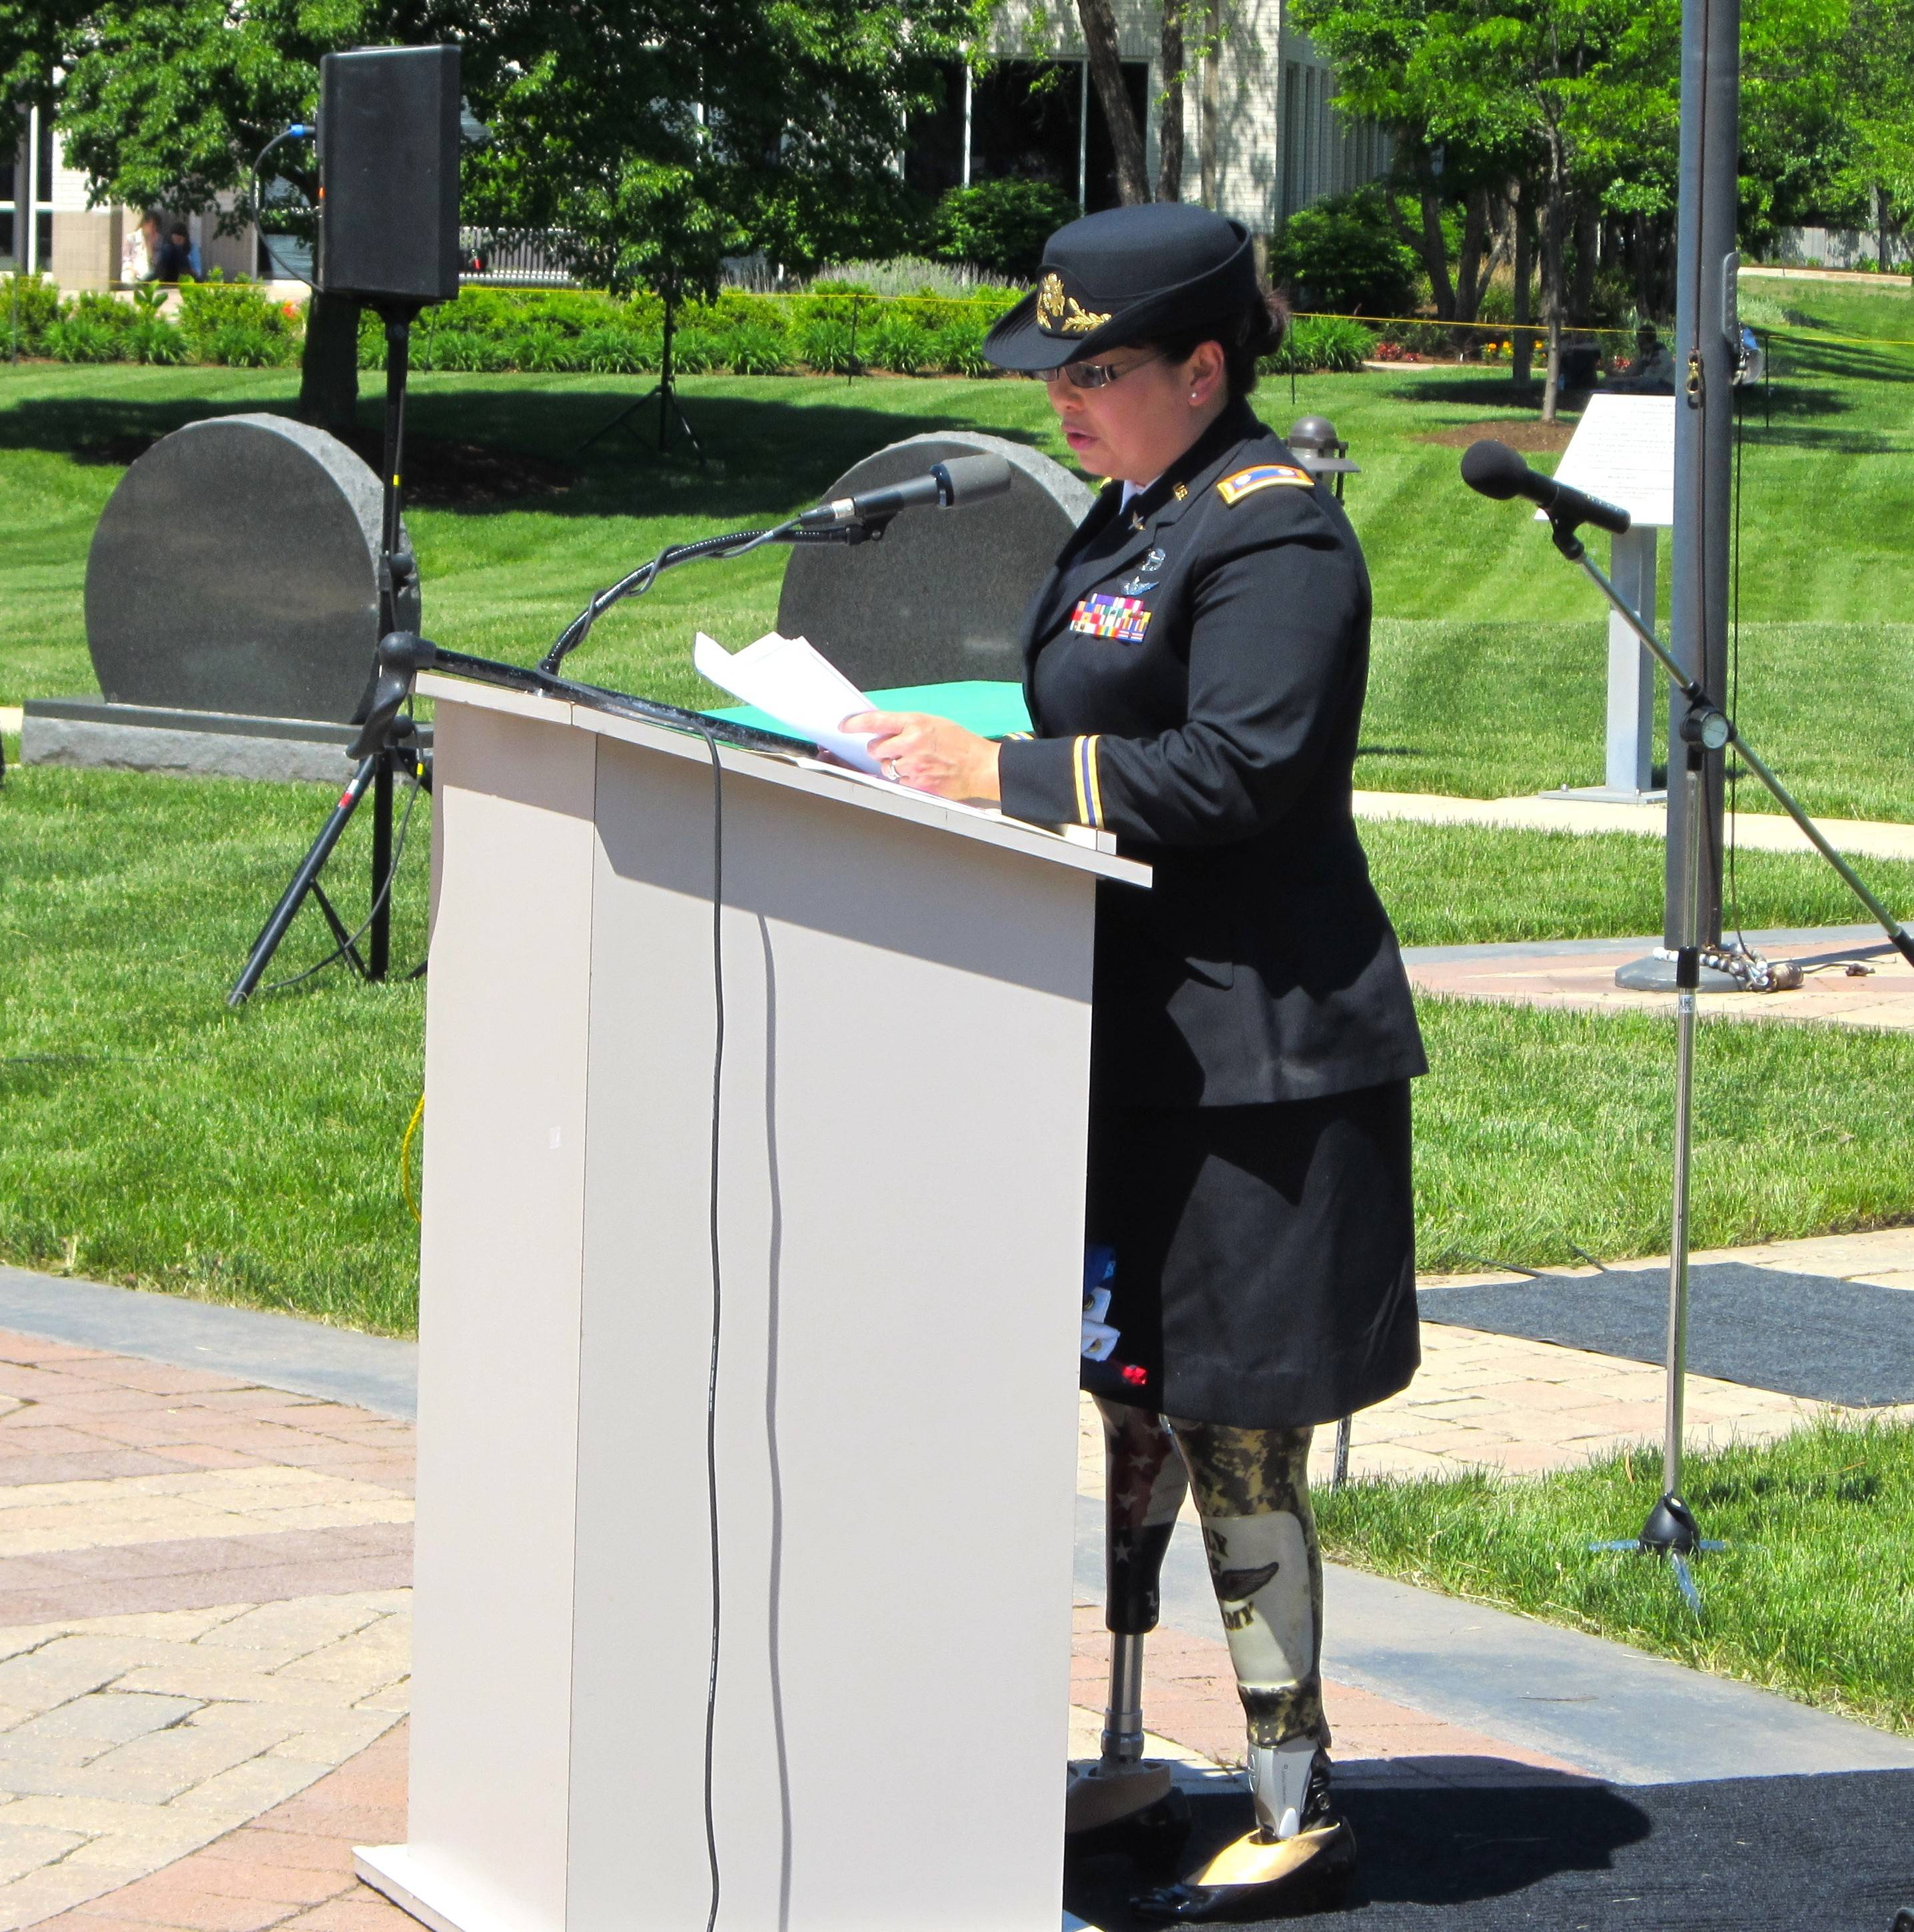 U.S. Rep. Tammy Duckworth, a veteran of the war in Iraq, delivers the keynote speech Sunday at the Veterans Memorial ceremony in Streamwood.